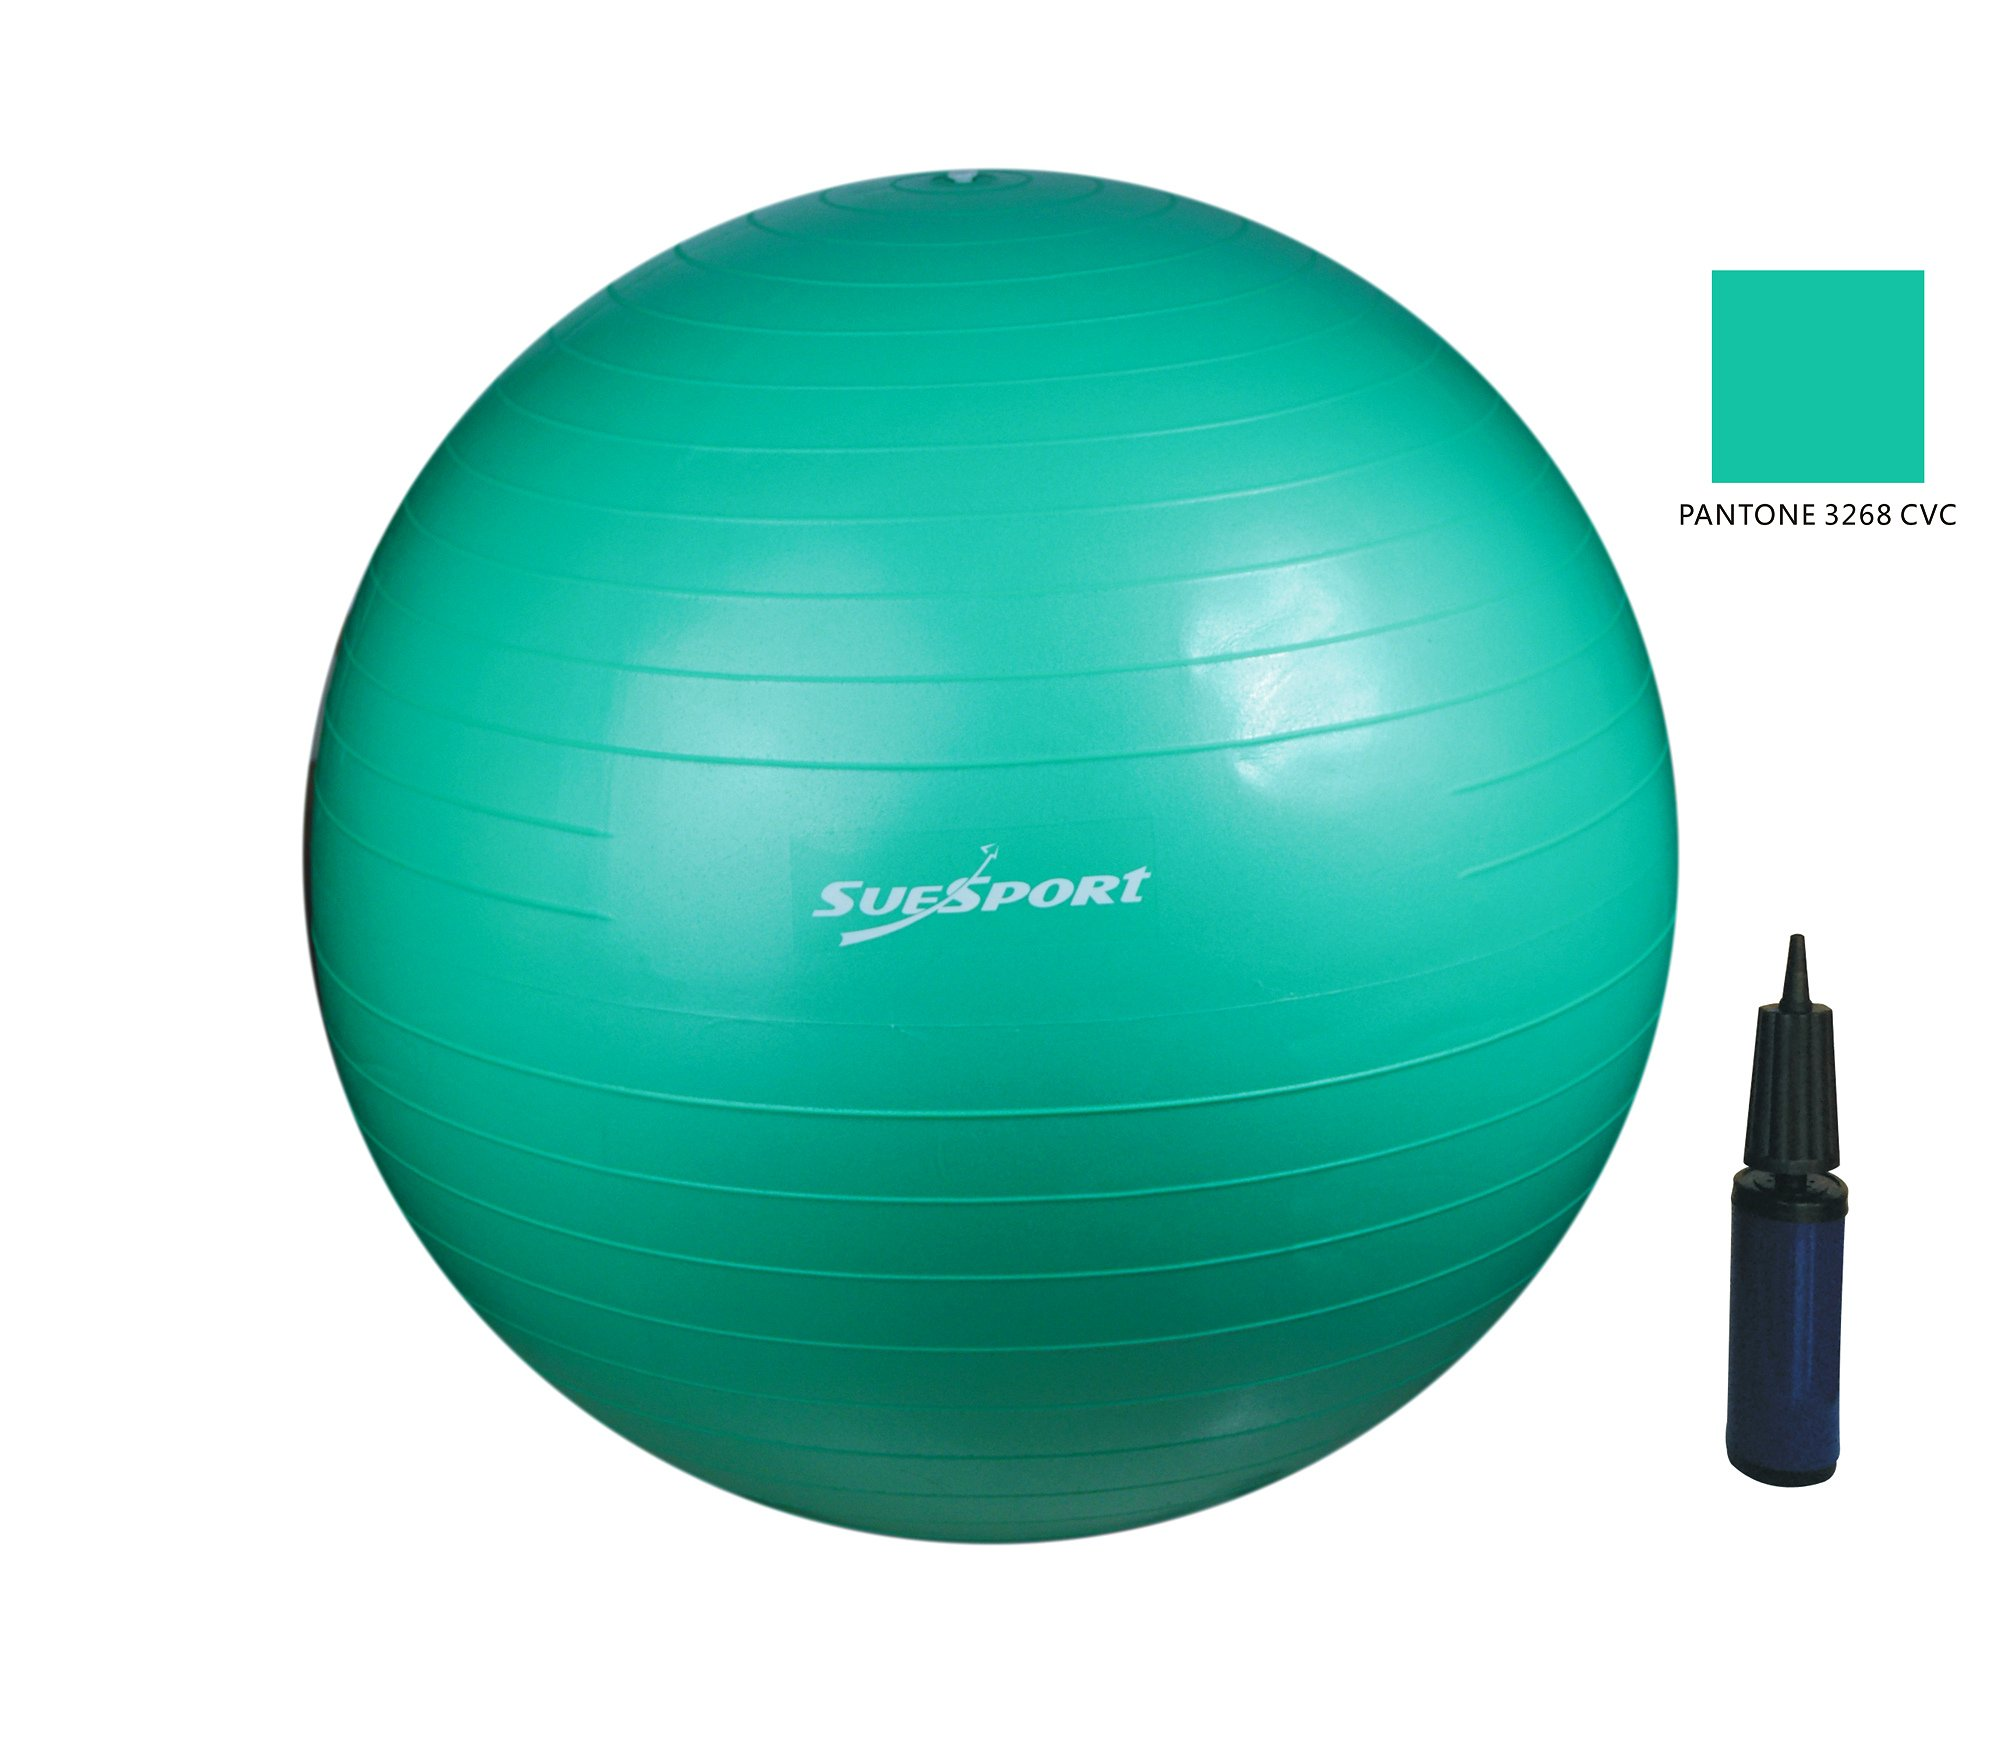 SUESPORT 1500lbs Static Strength Anti-Burst Exercise Ball Kit With Pump, Diameter 30'' (75cm), Aqua Green